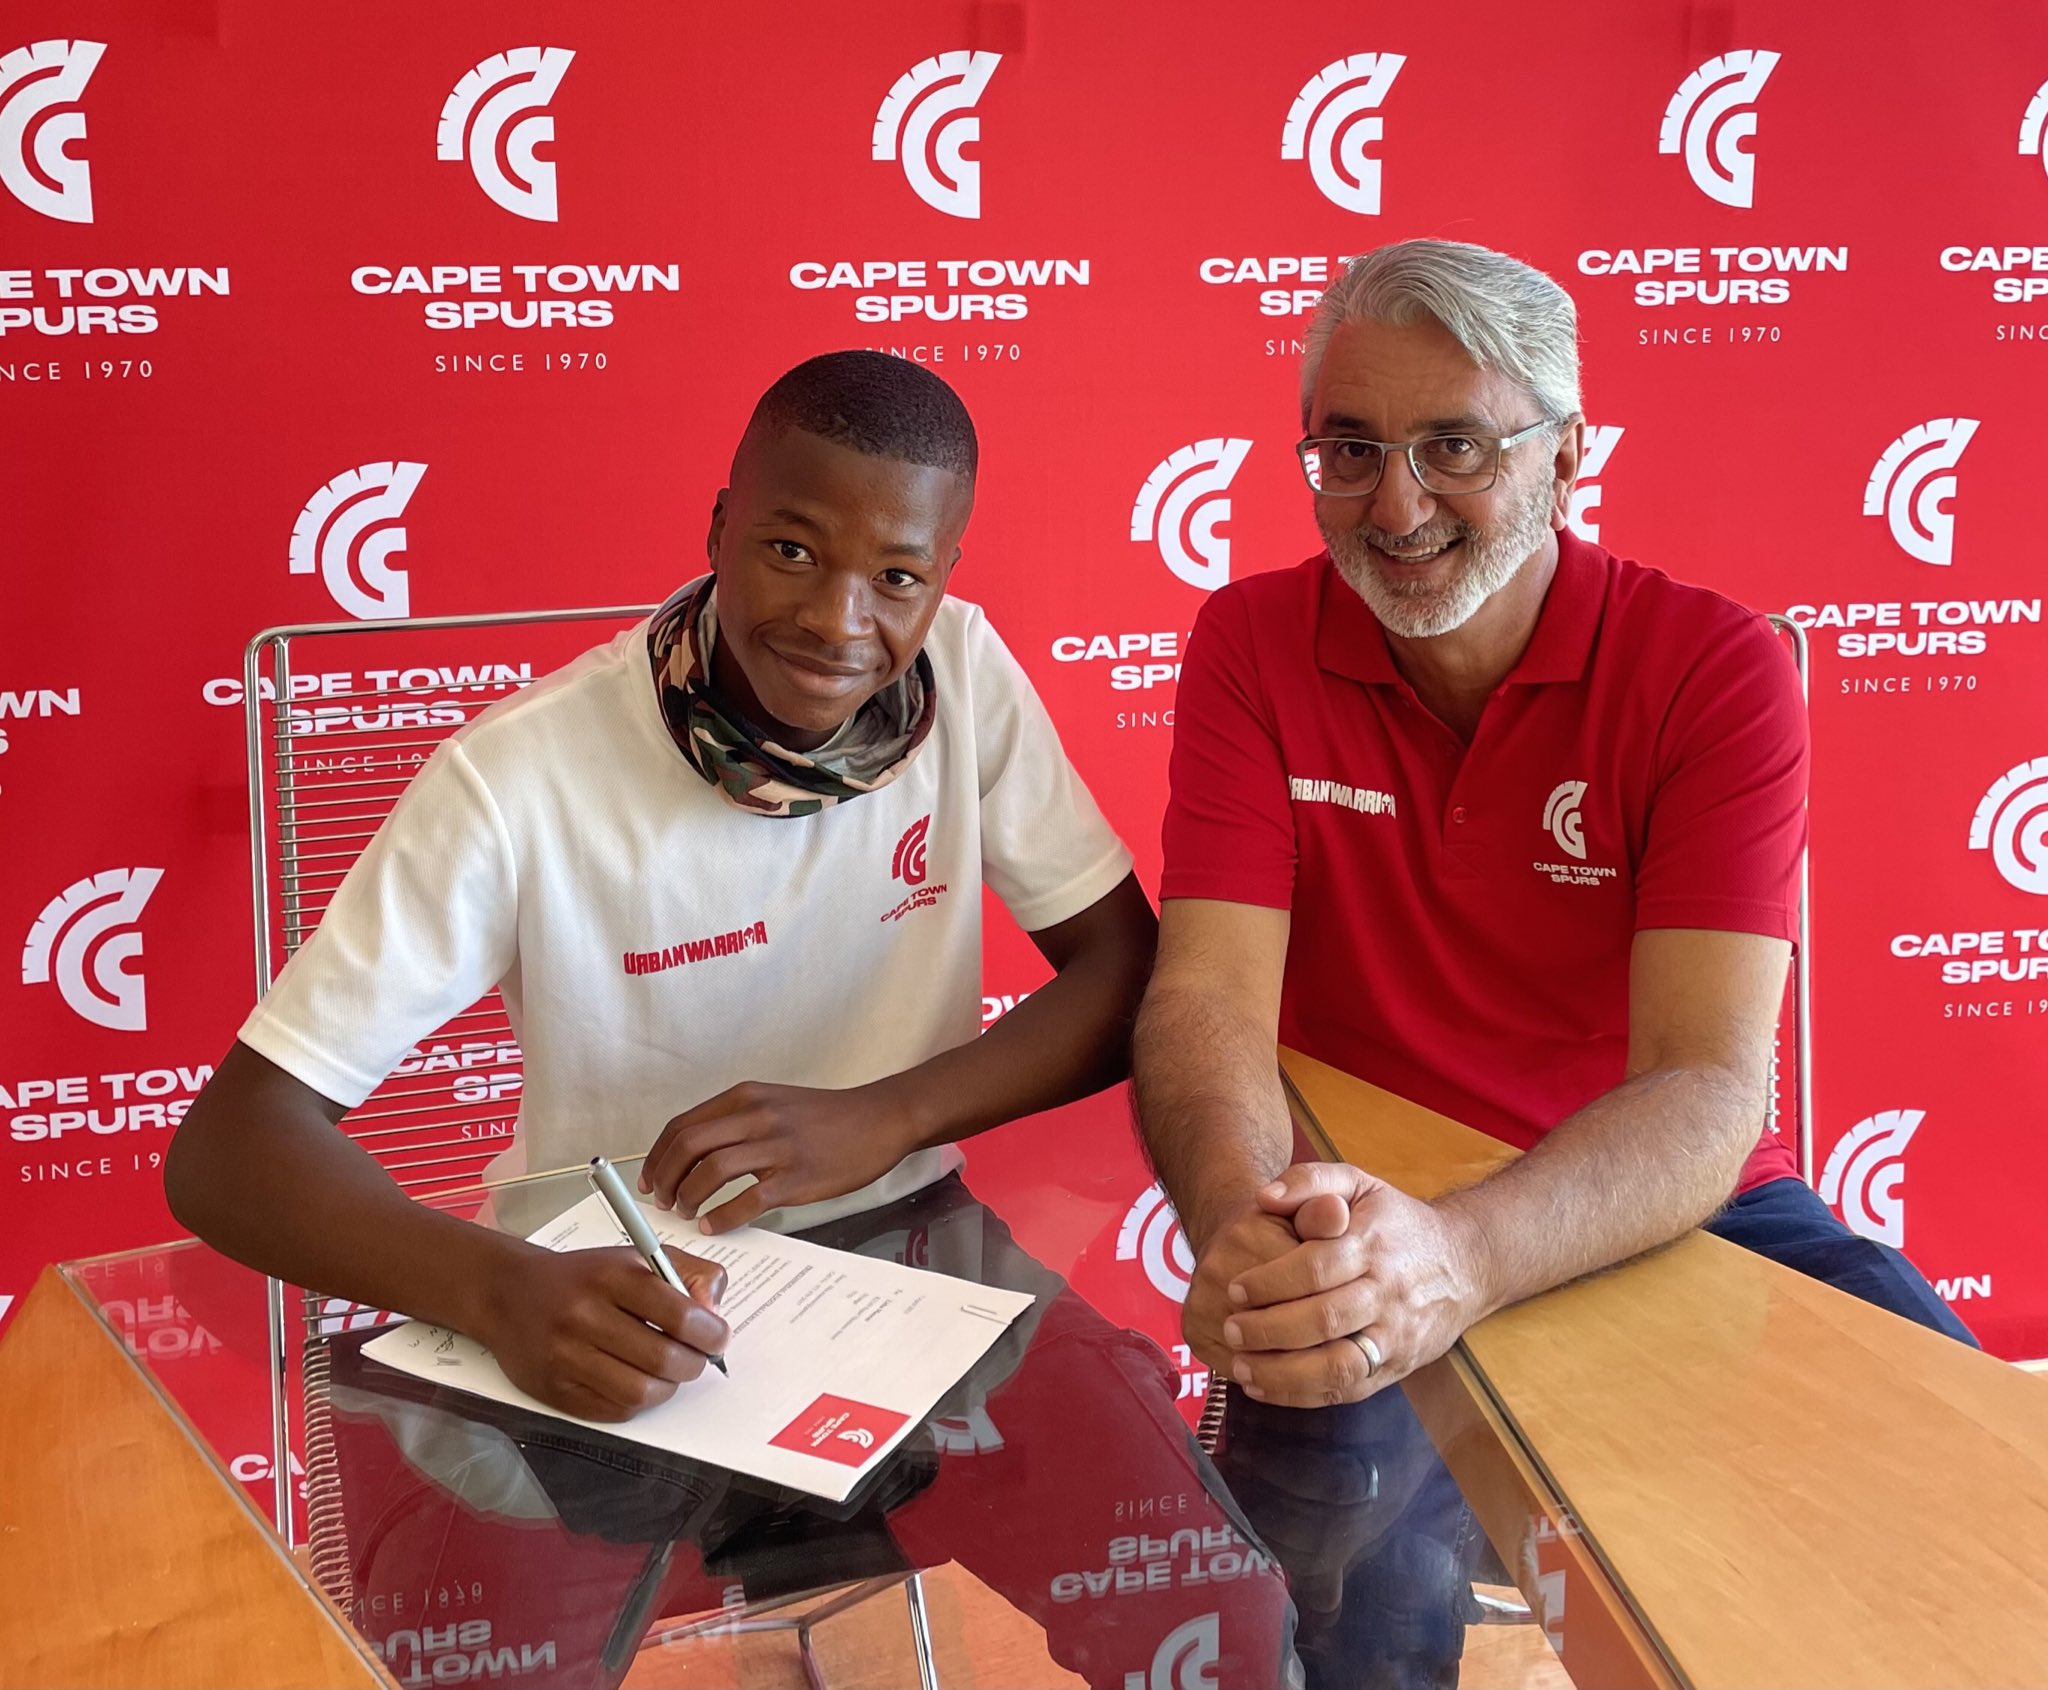 Cape Town Spurs continues the tradition as Litha Manzini signs professional contract with the club